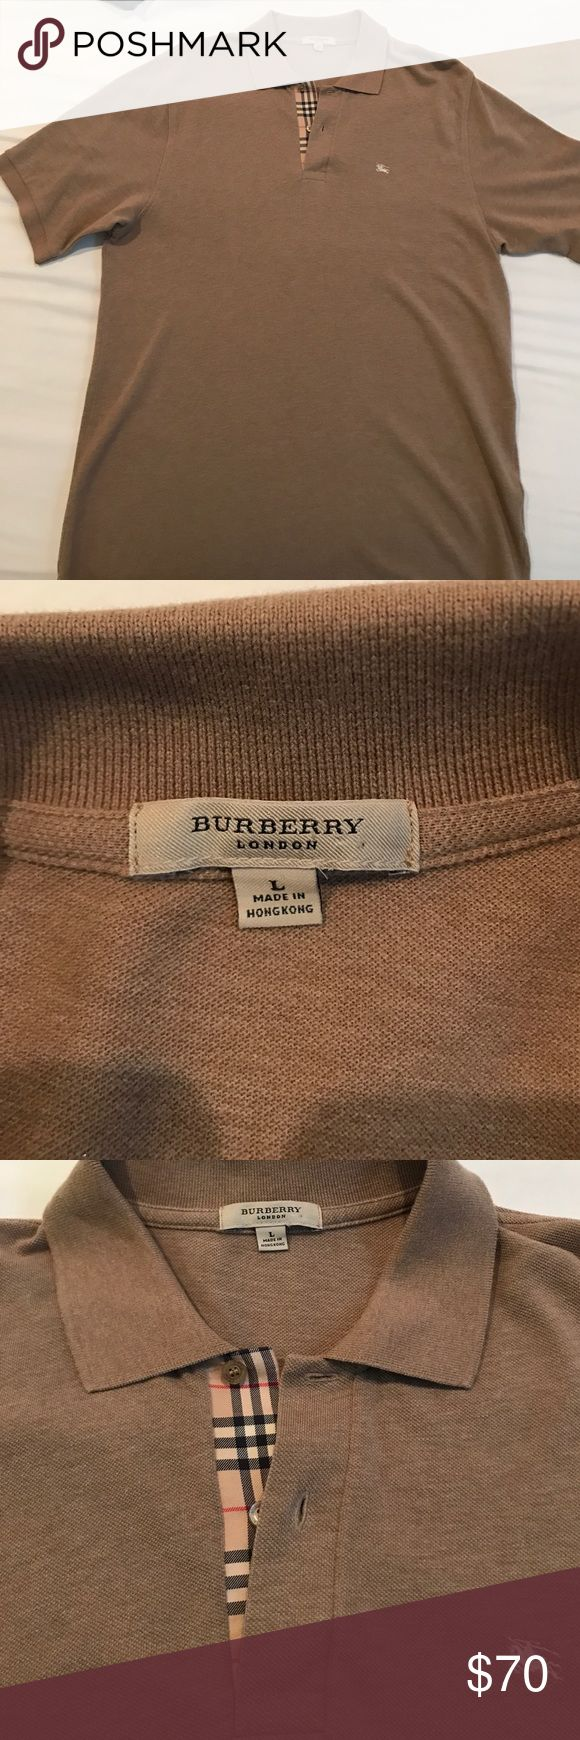 Men Burberry polo shirt 💯 authentic Burberry Polo shirt for men size Large . Worn 2 times. Smoke and pet free environment. Shirt has only been to the cleaners. Shirts Polos